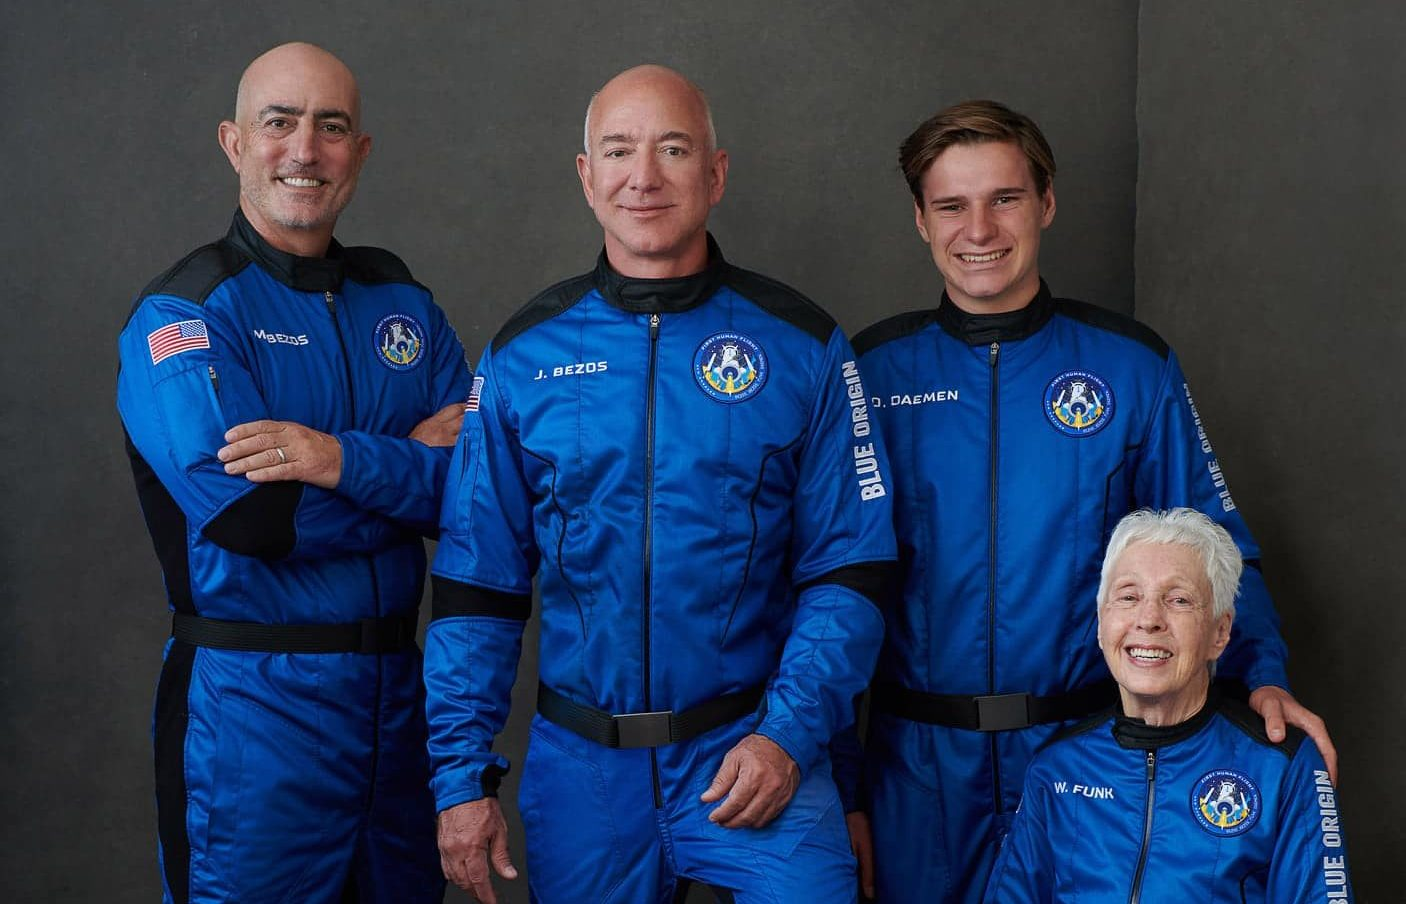 Jeff Bezos with his crew on the first Blue Origin flight into space